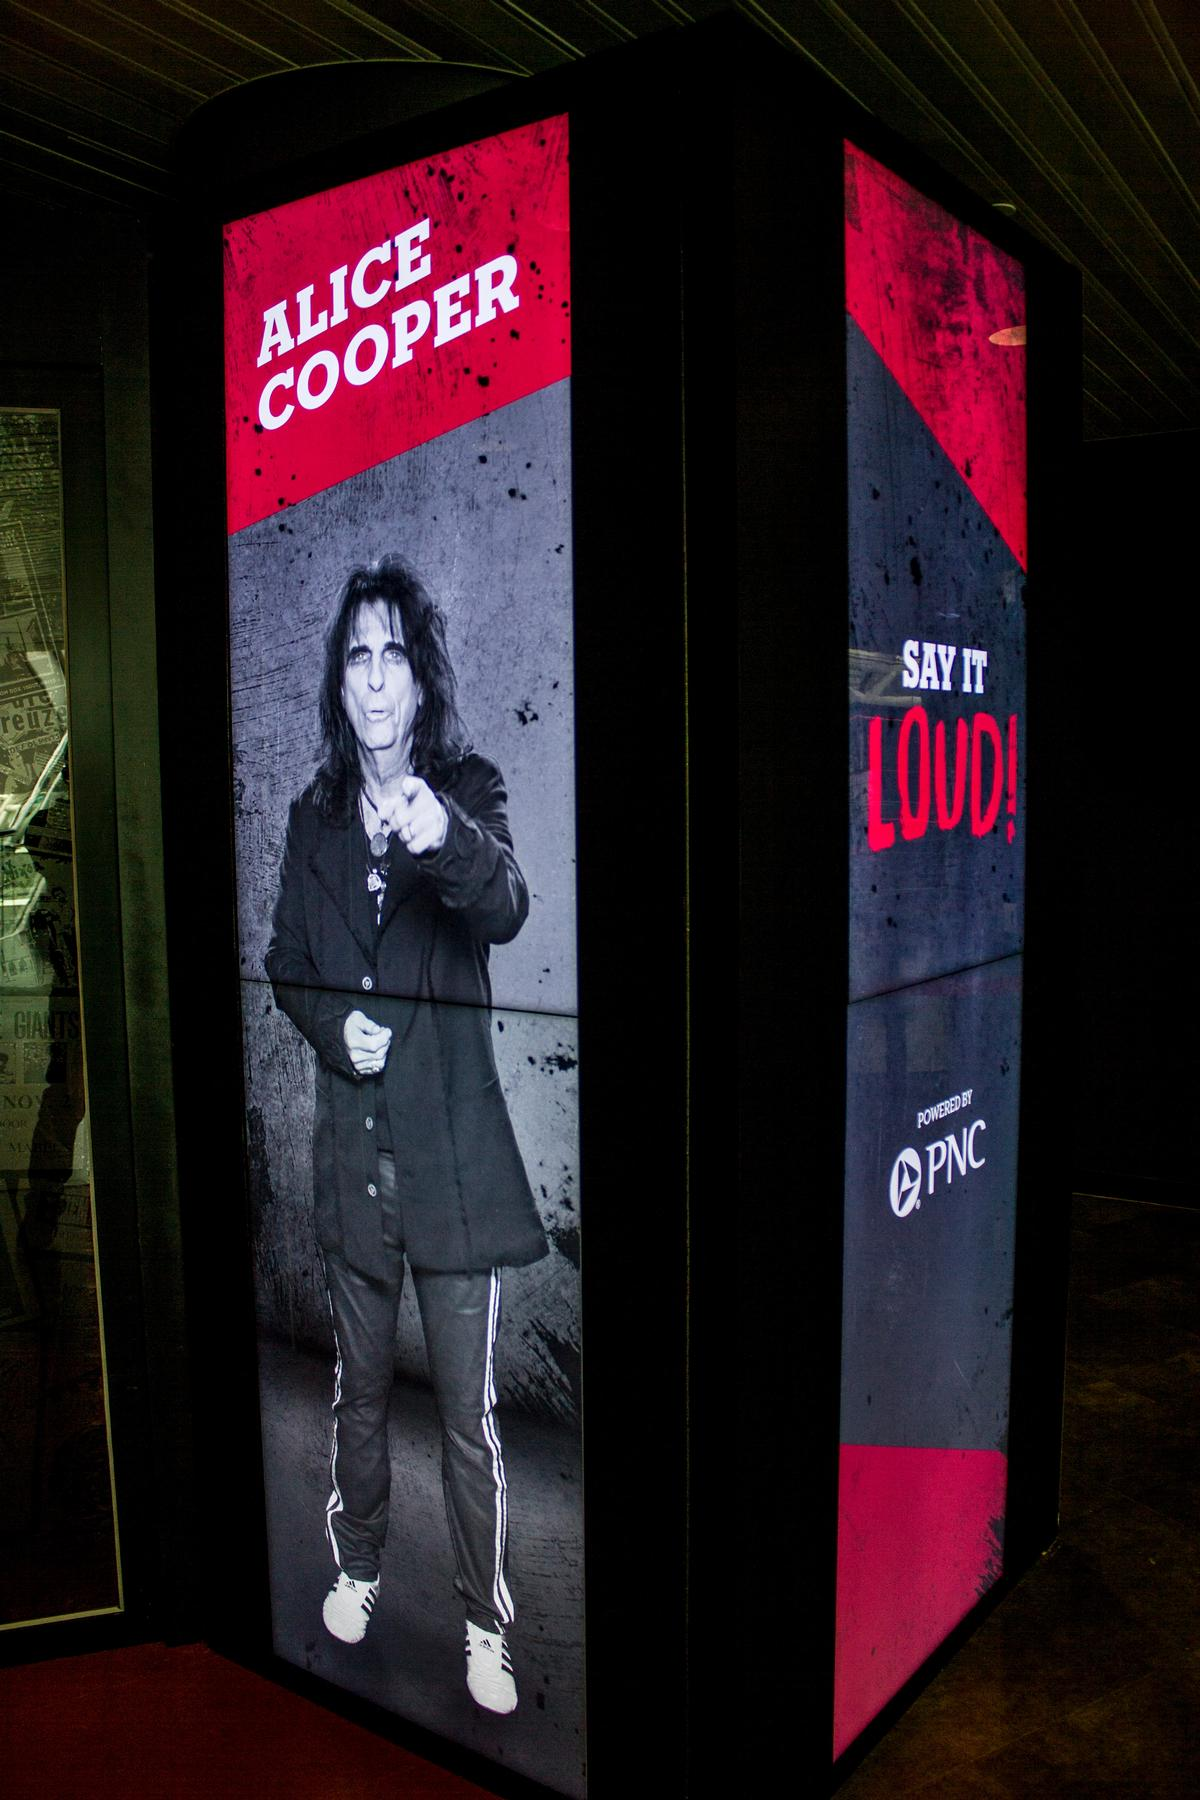 The 'Say it Loud' story booths have different Hall of Fame inductees 'interview' visitors in special interactive booths / Rock and Roll Hall of Fame